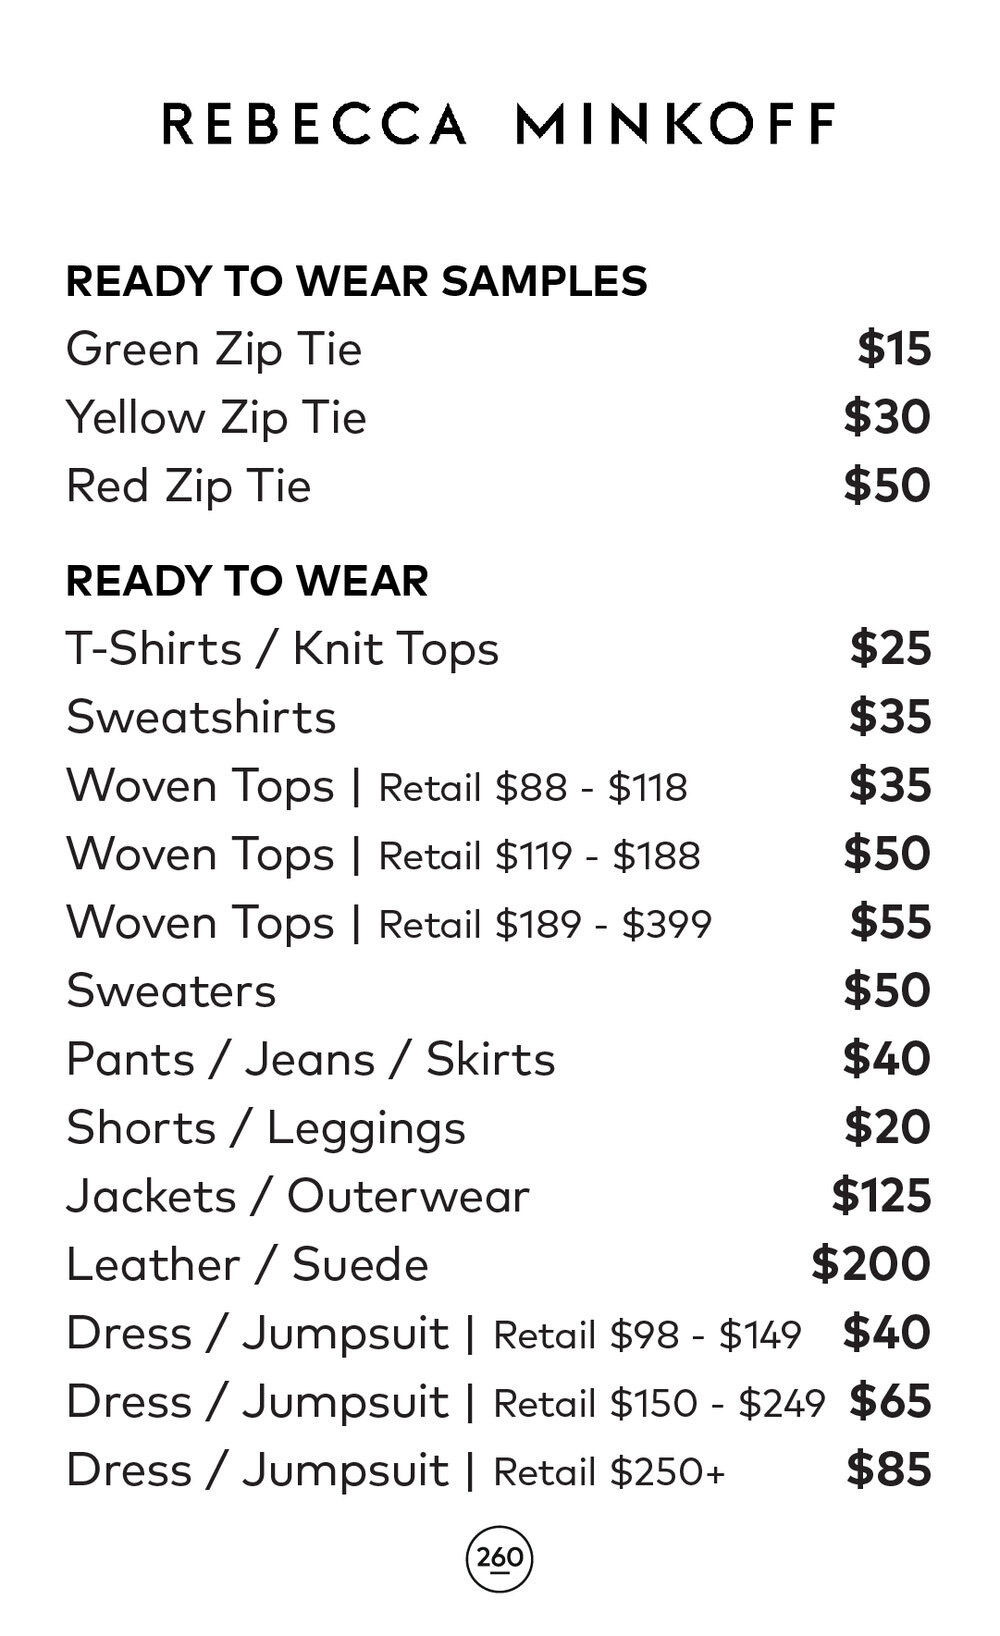 Rebecca Minkoff Sample Sale RTW Price List